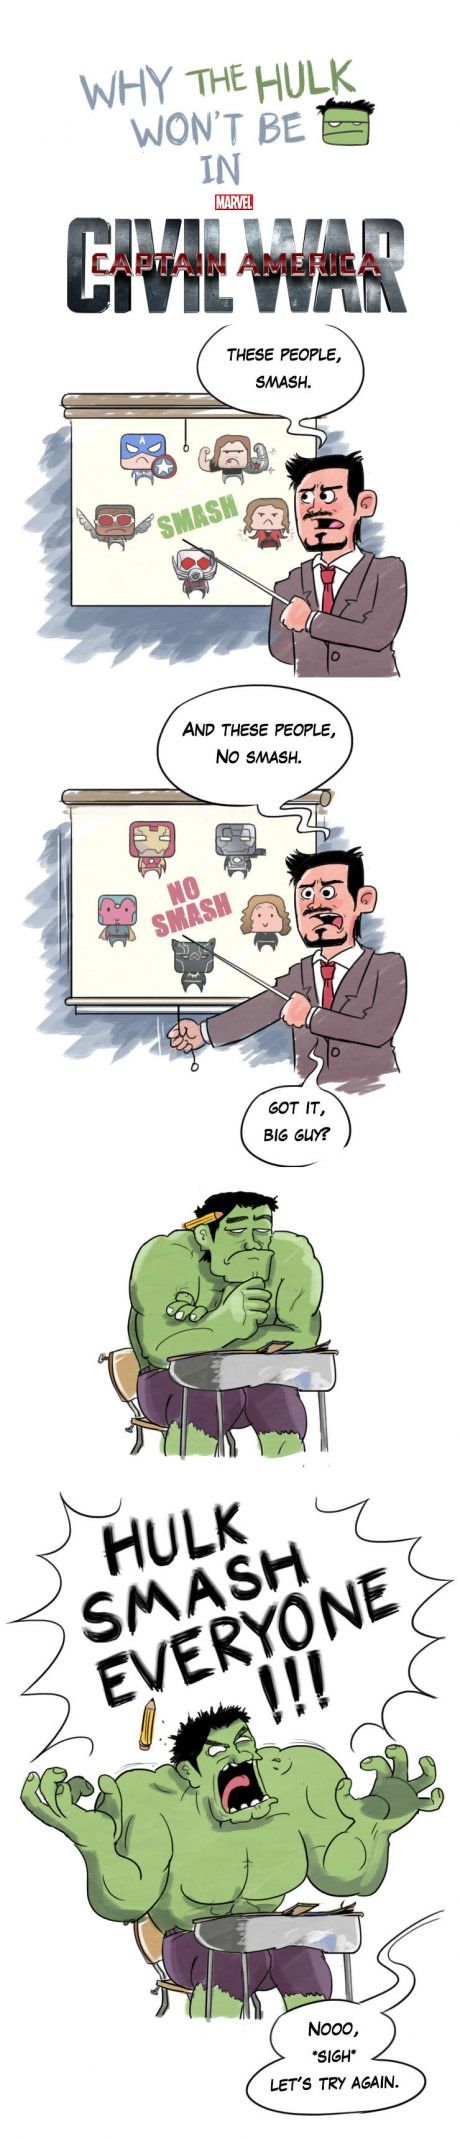 Why The Hulk won't be in Civil War ~Art by Markmak~ - Visit to grab an amazing super hero shirt now on sale!